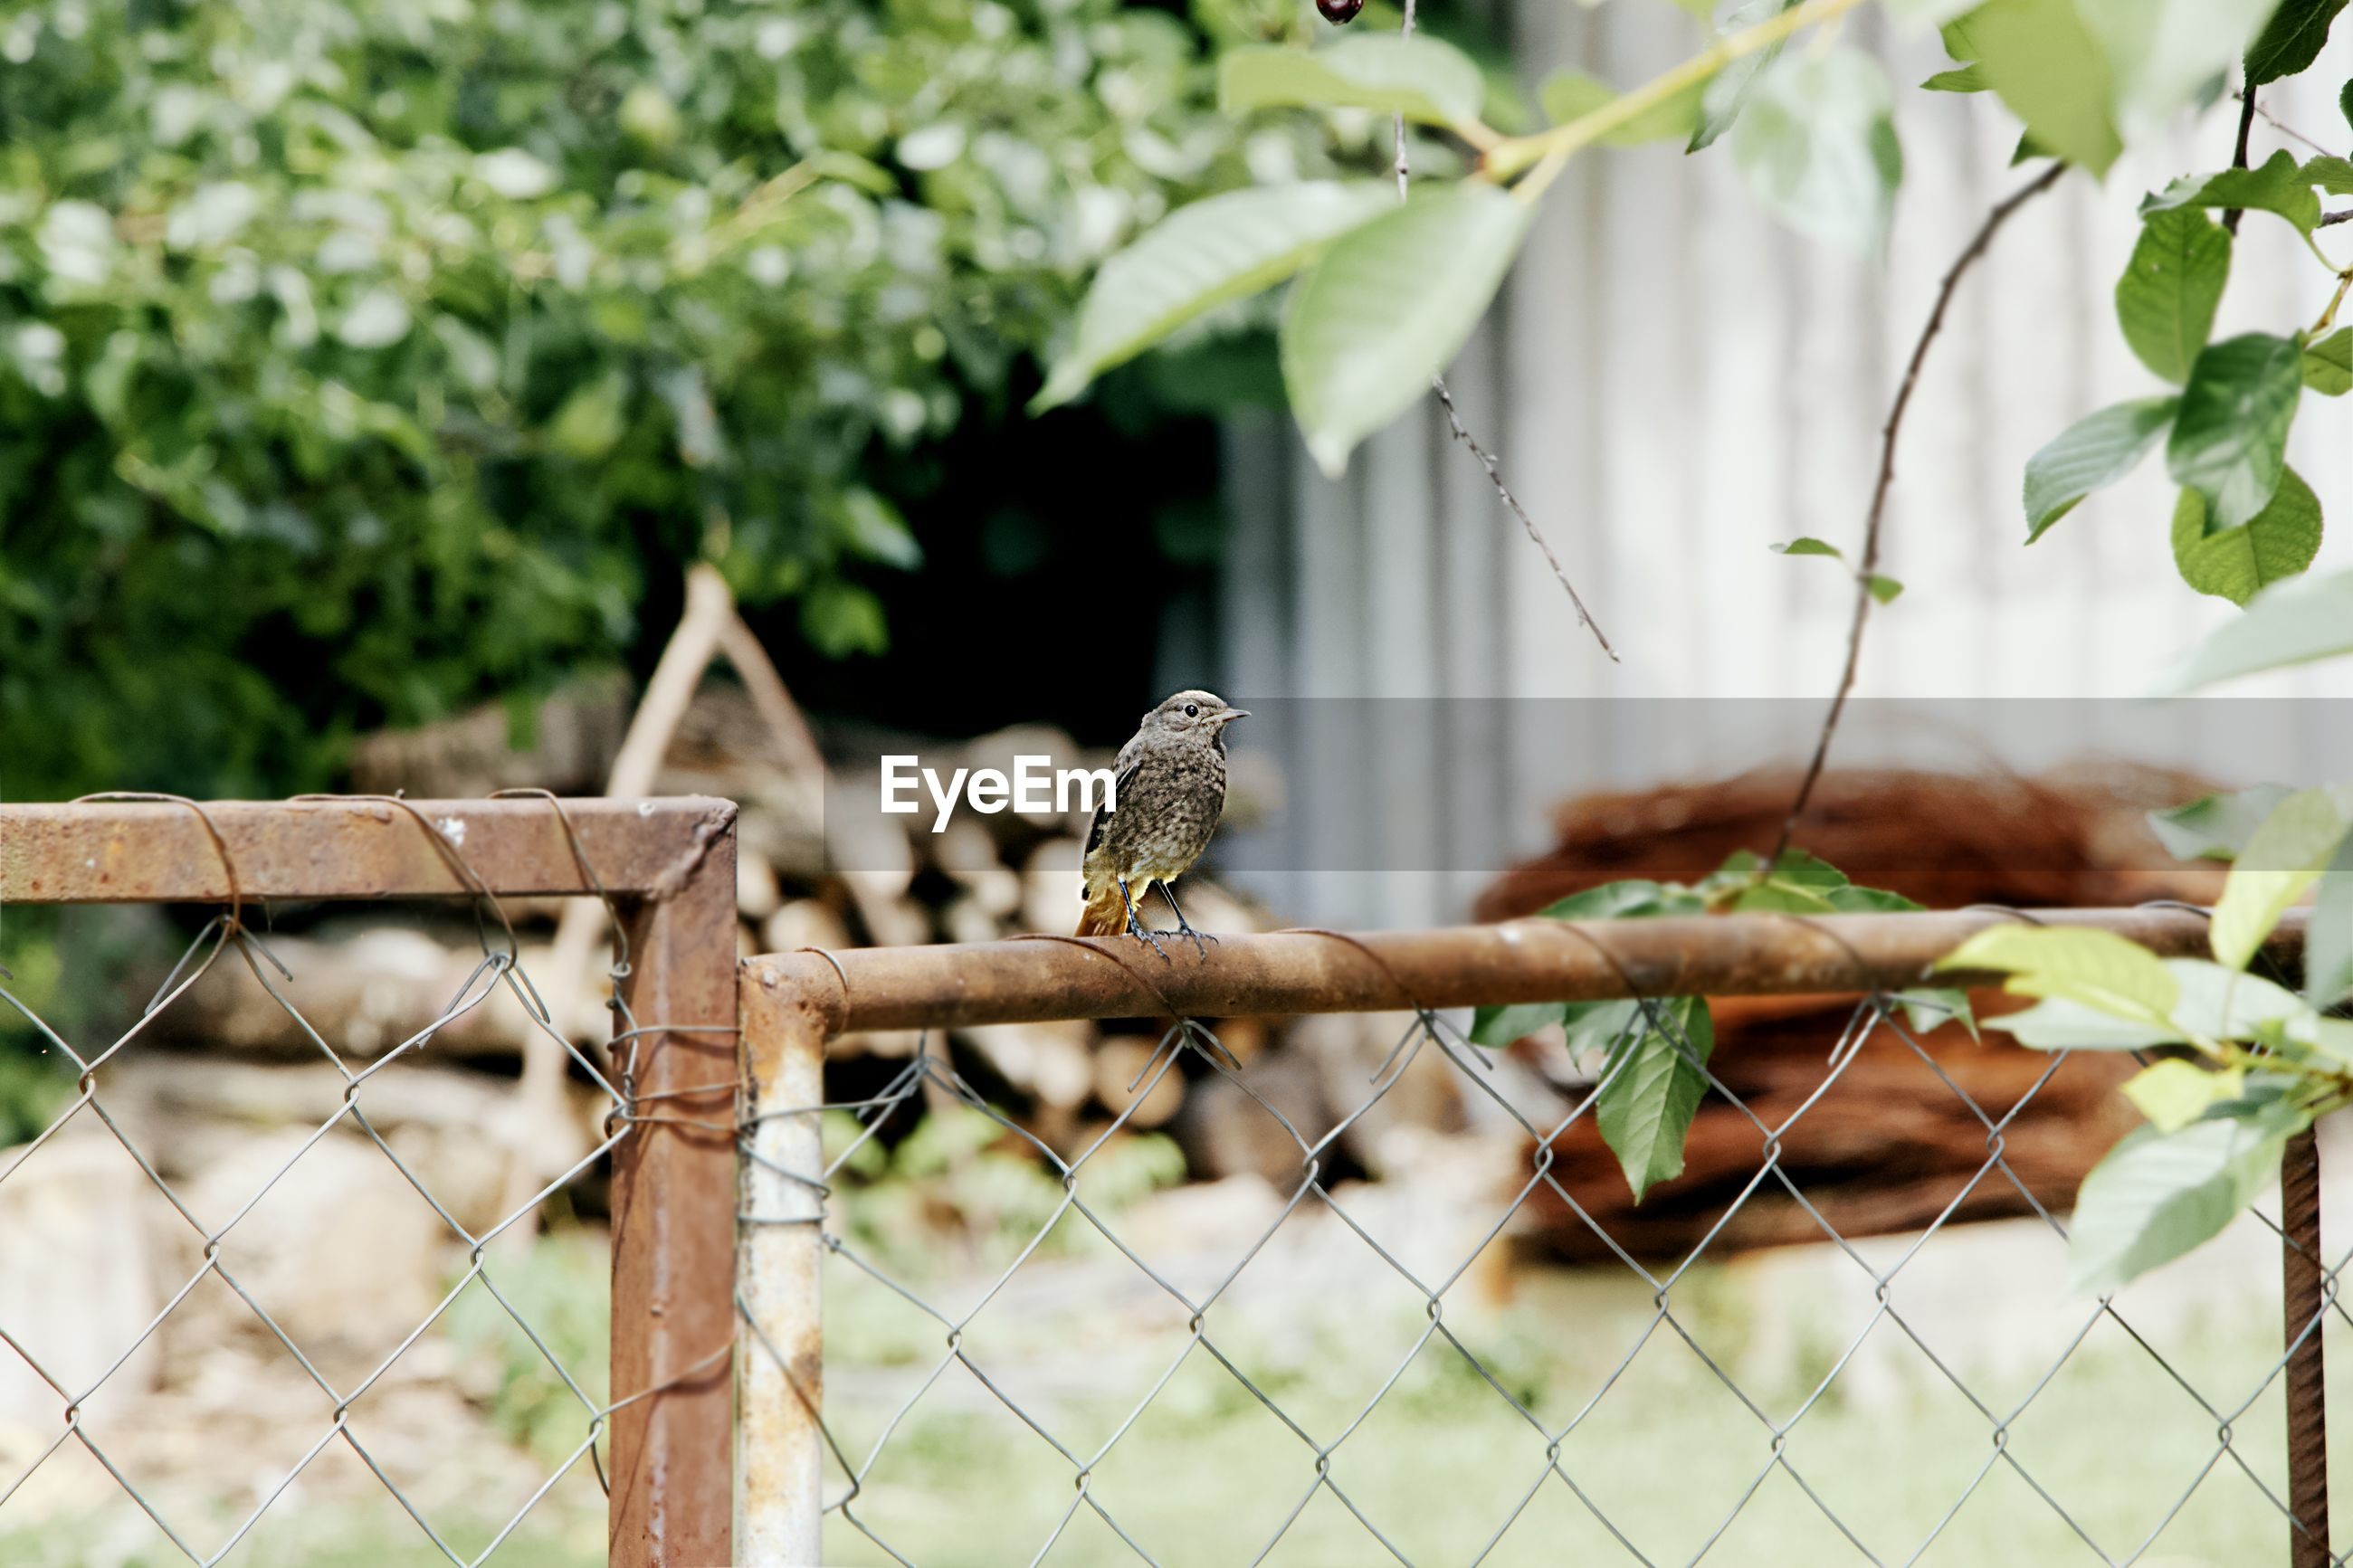 VIEW OF BIRD PERCHING ON FENCE